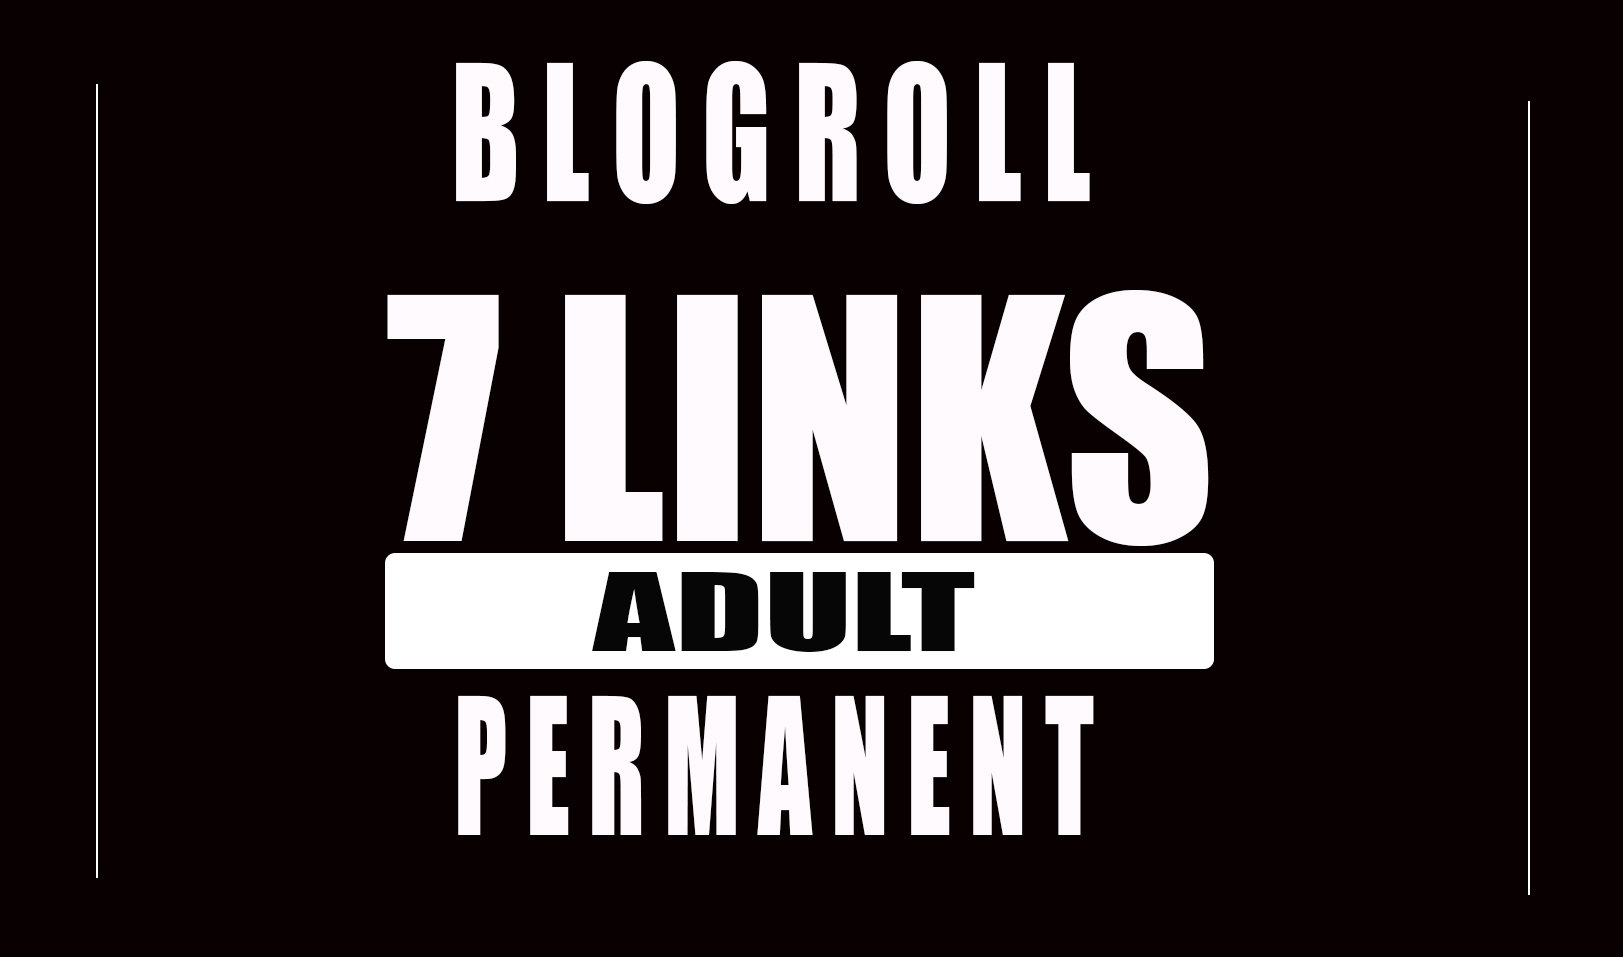 give link DA70x7 site ADULT blogroll permanent